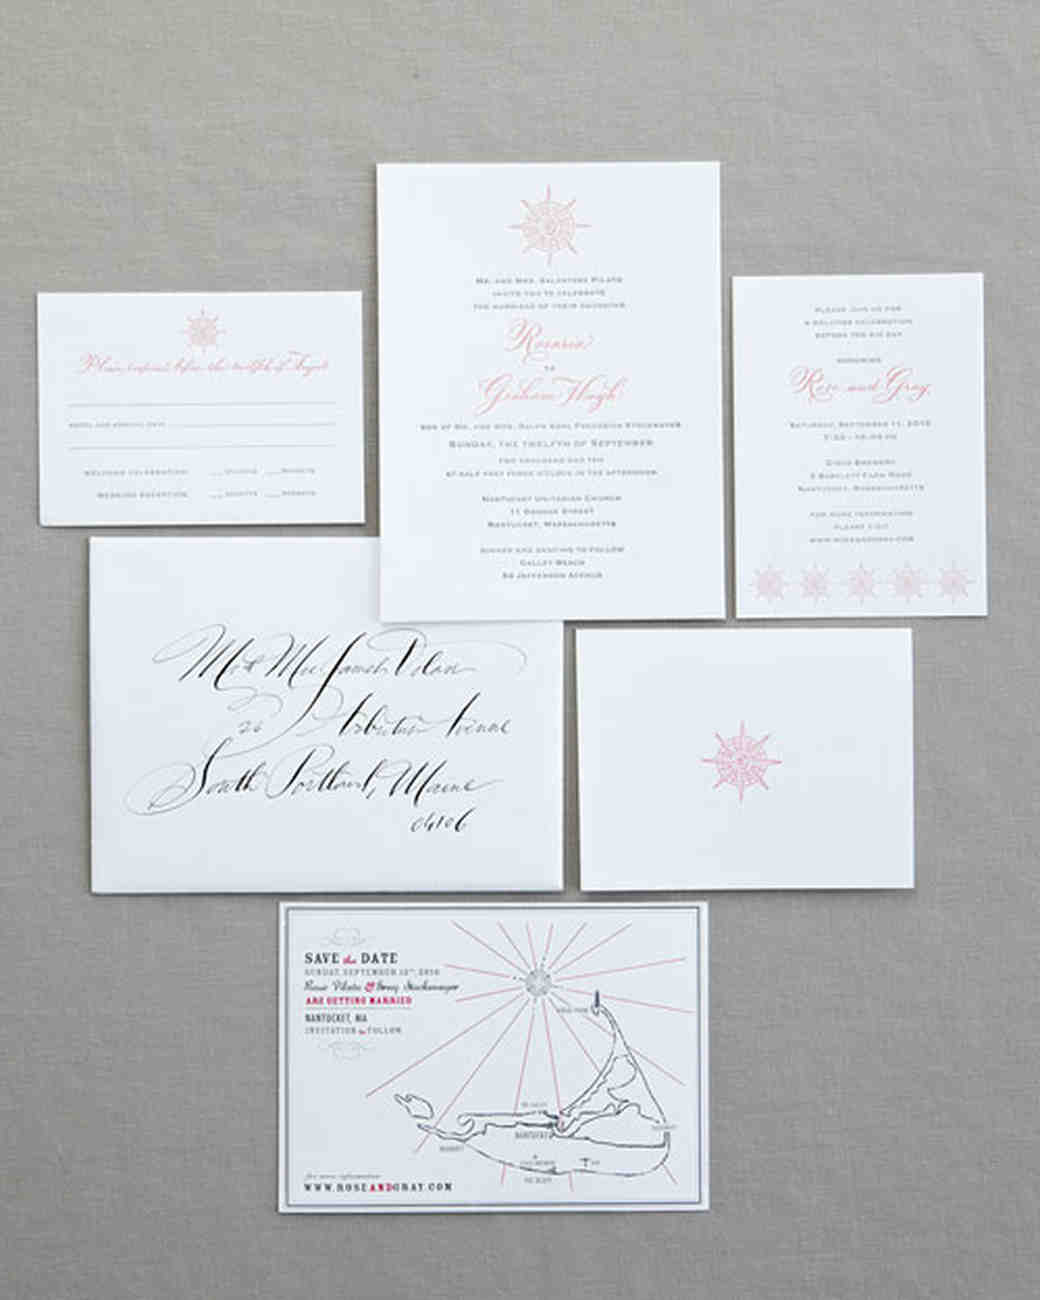 real-wedding-rose-gary-0411-invite.jpg